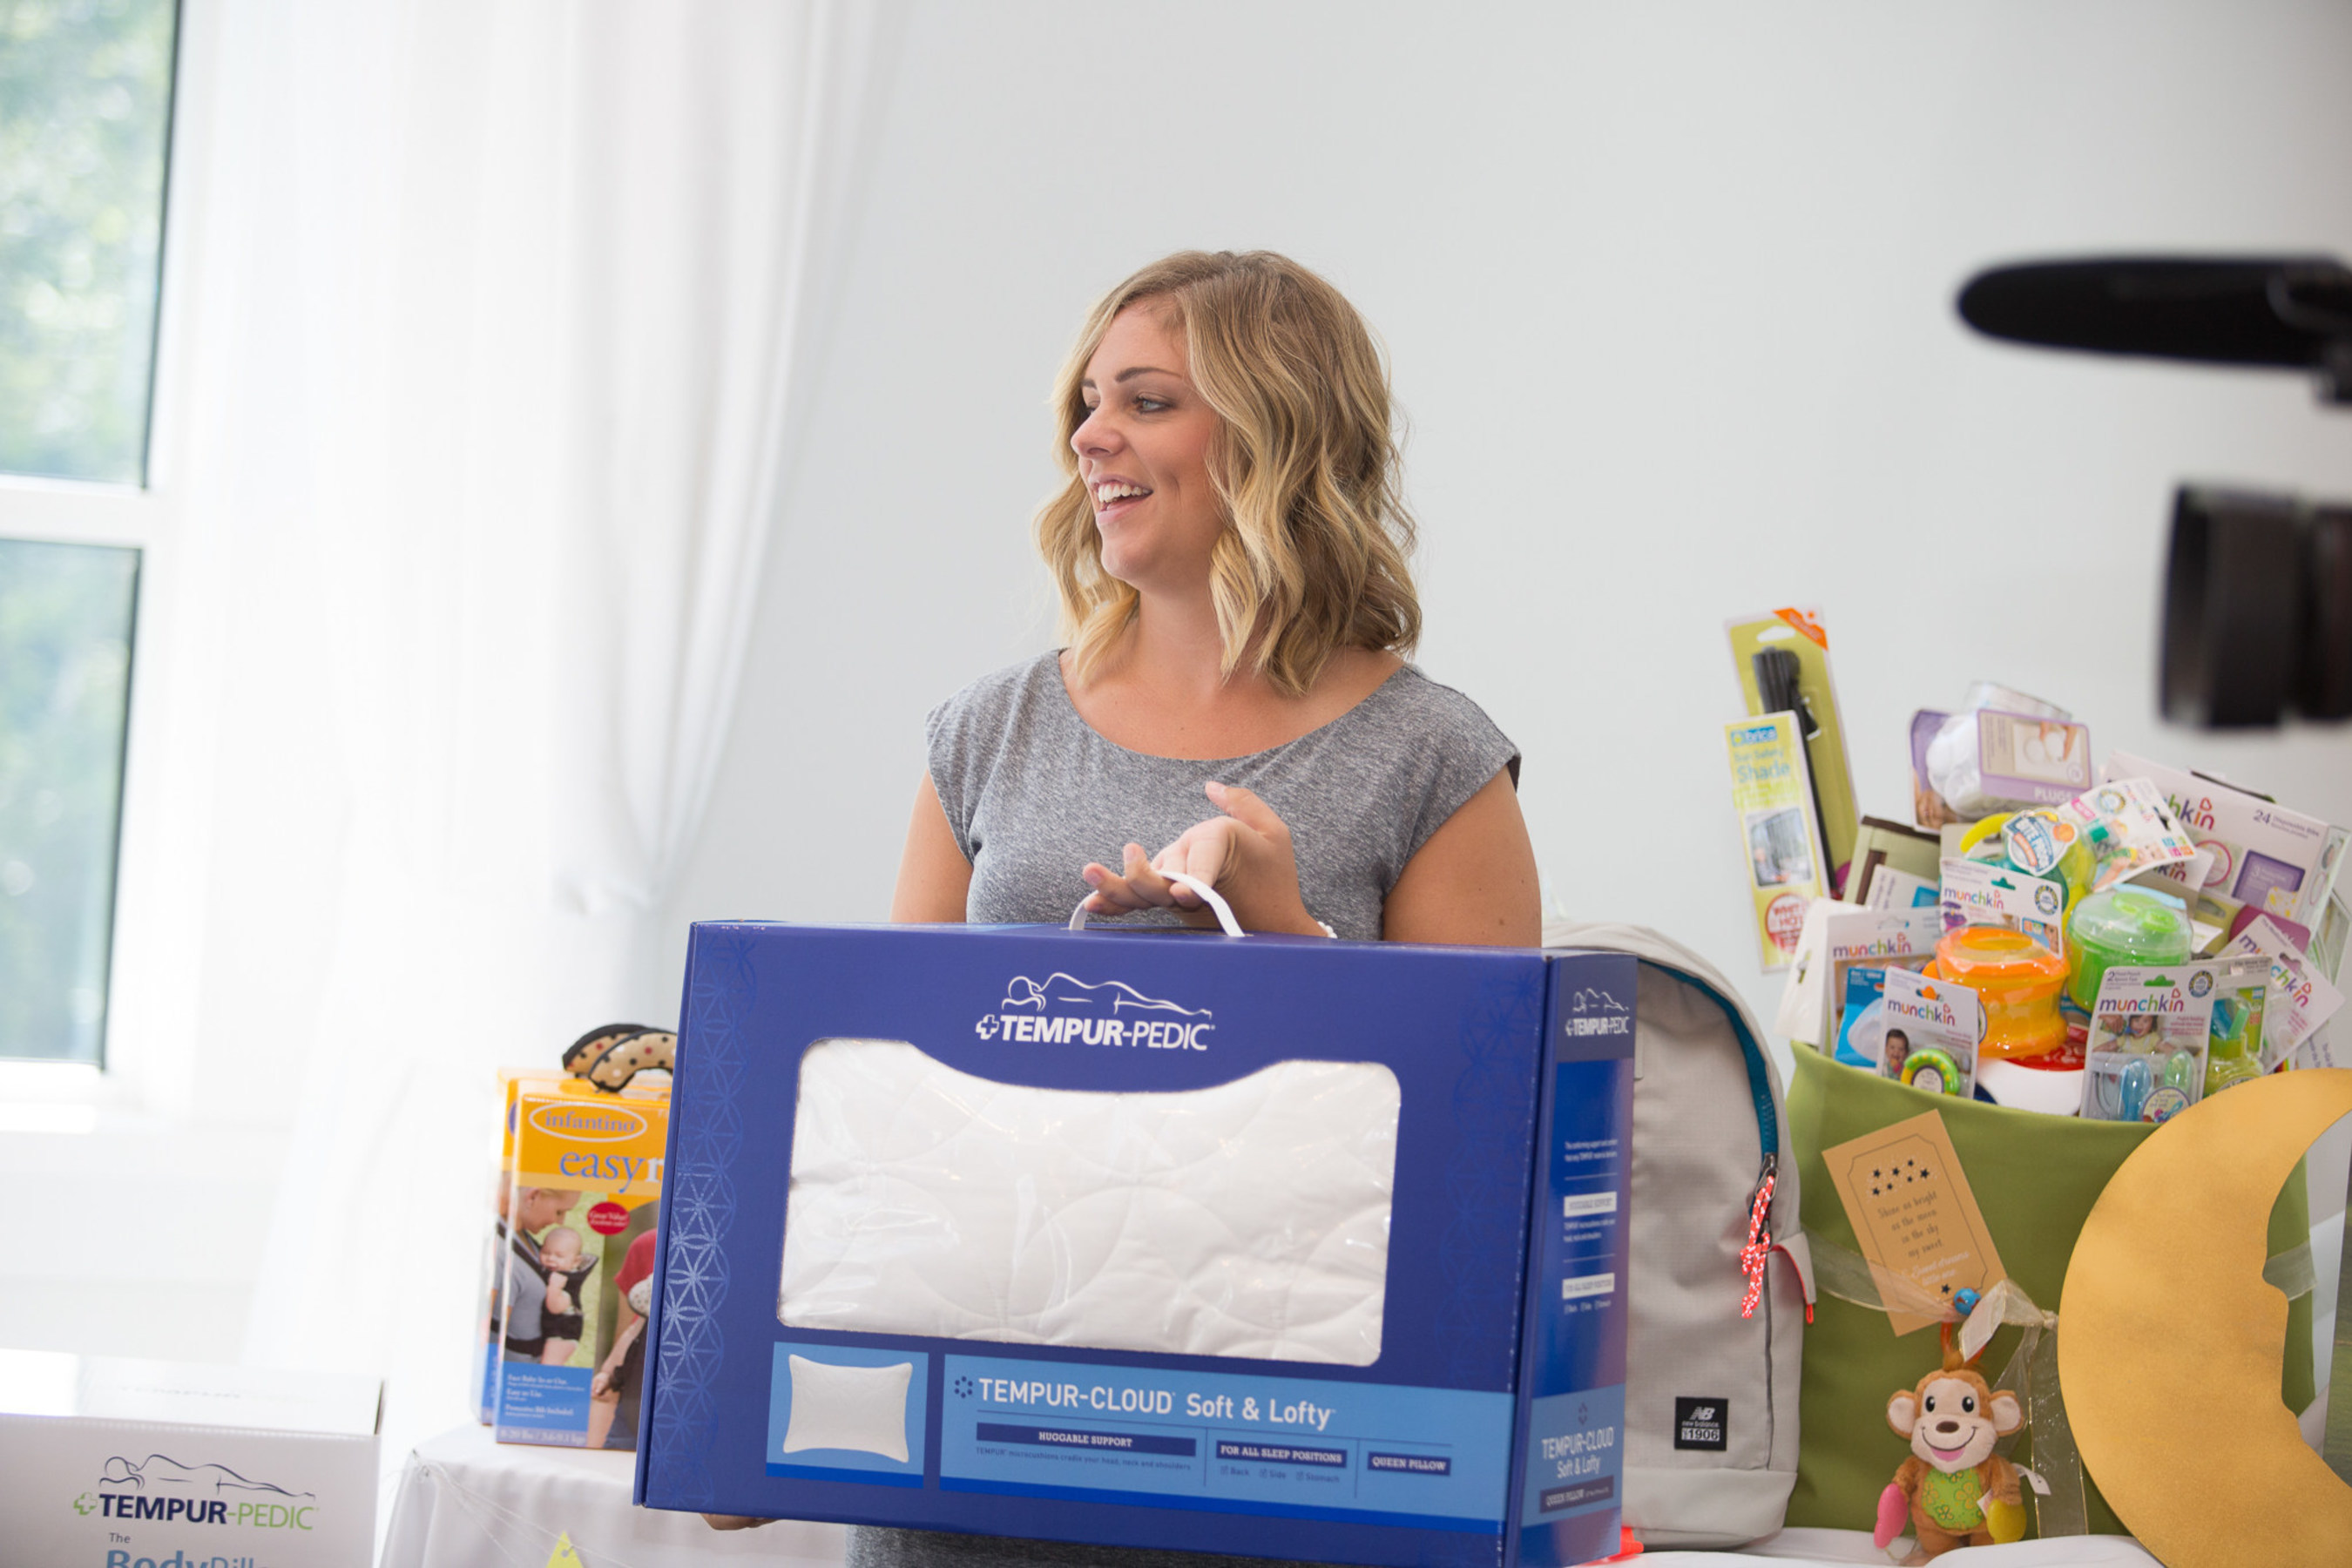 TEMPUR-PEDIC(R) worked with Operation Shower to recognize military moms at a special baby shower where 25 military moms were able to choose their very own Tempur-Pedic bed and also received a set of TEMPUR-Cloud(R) pillows and a teddy bear for their new baby.